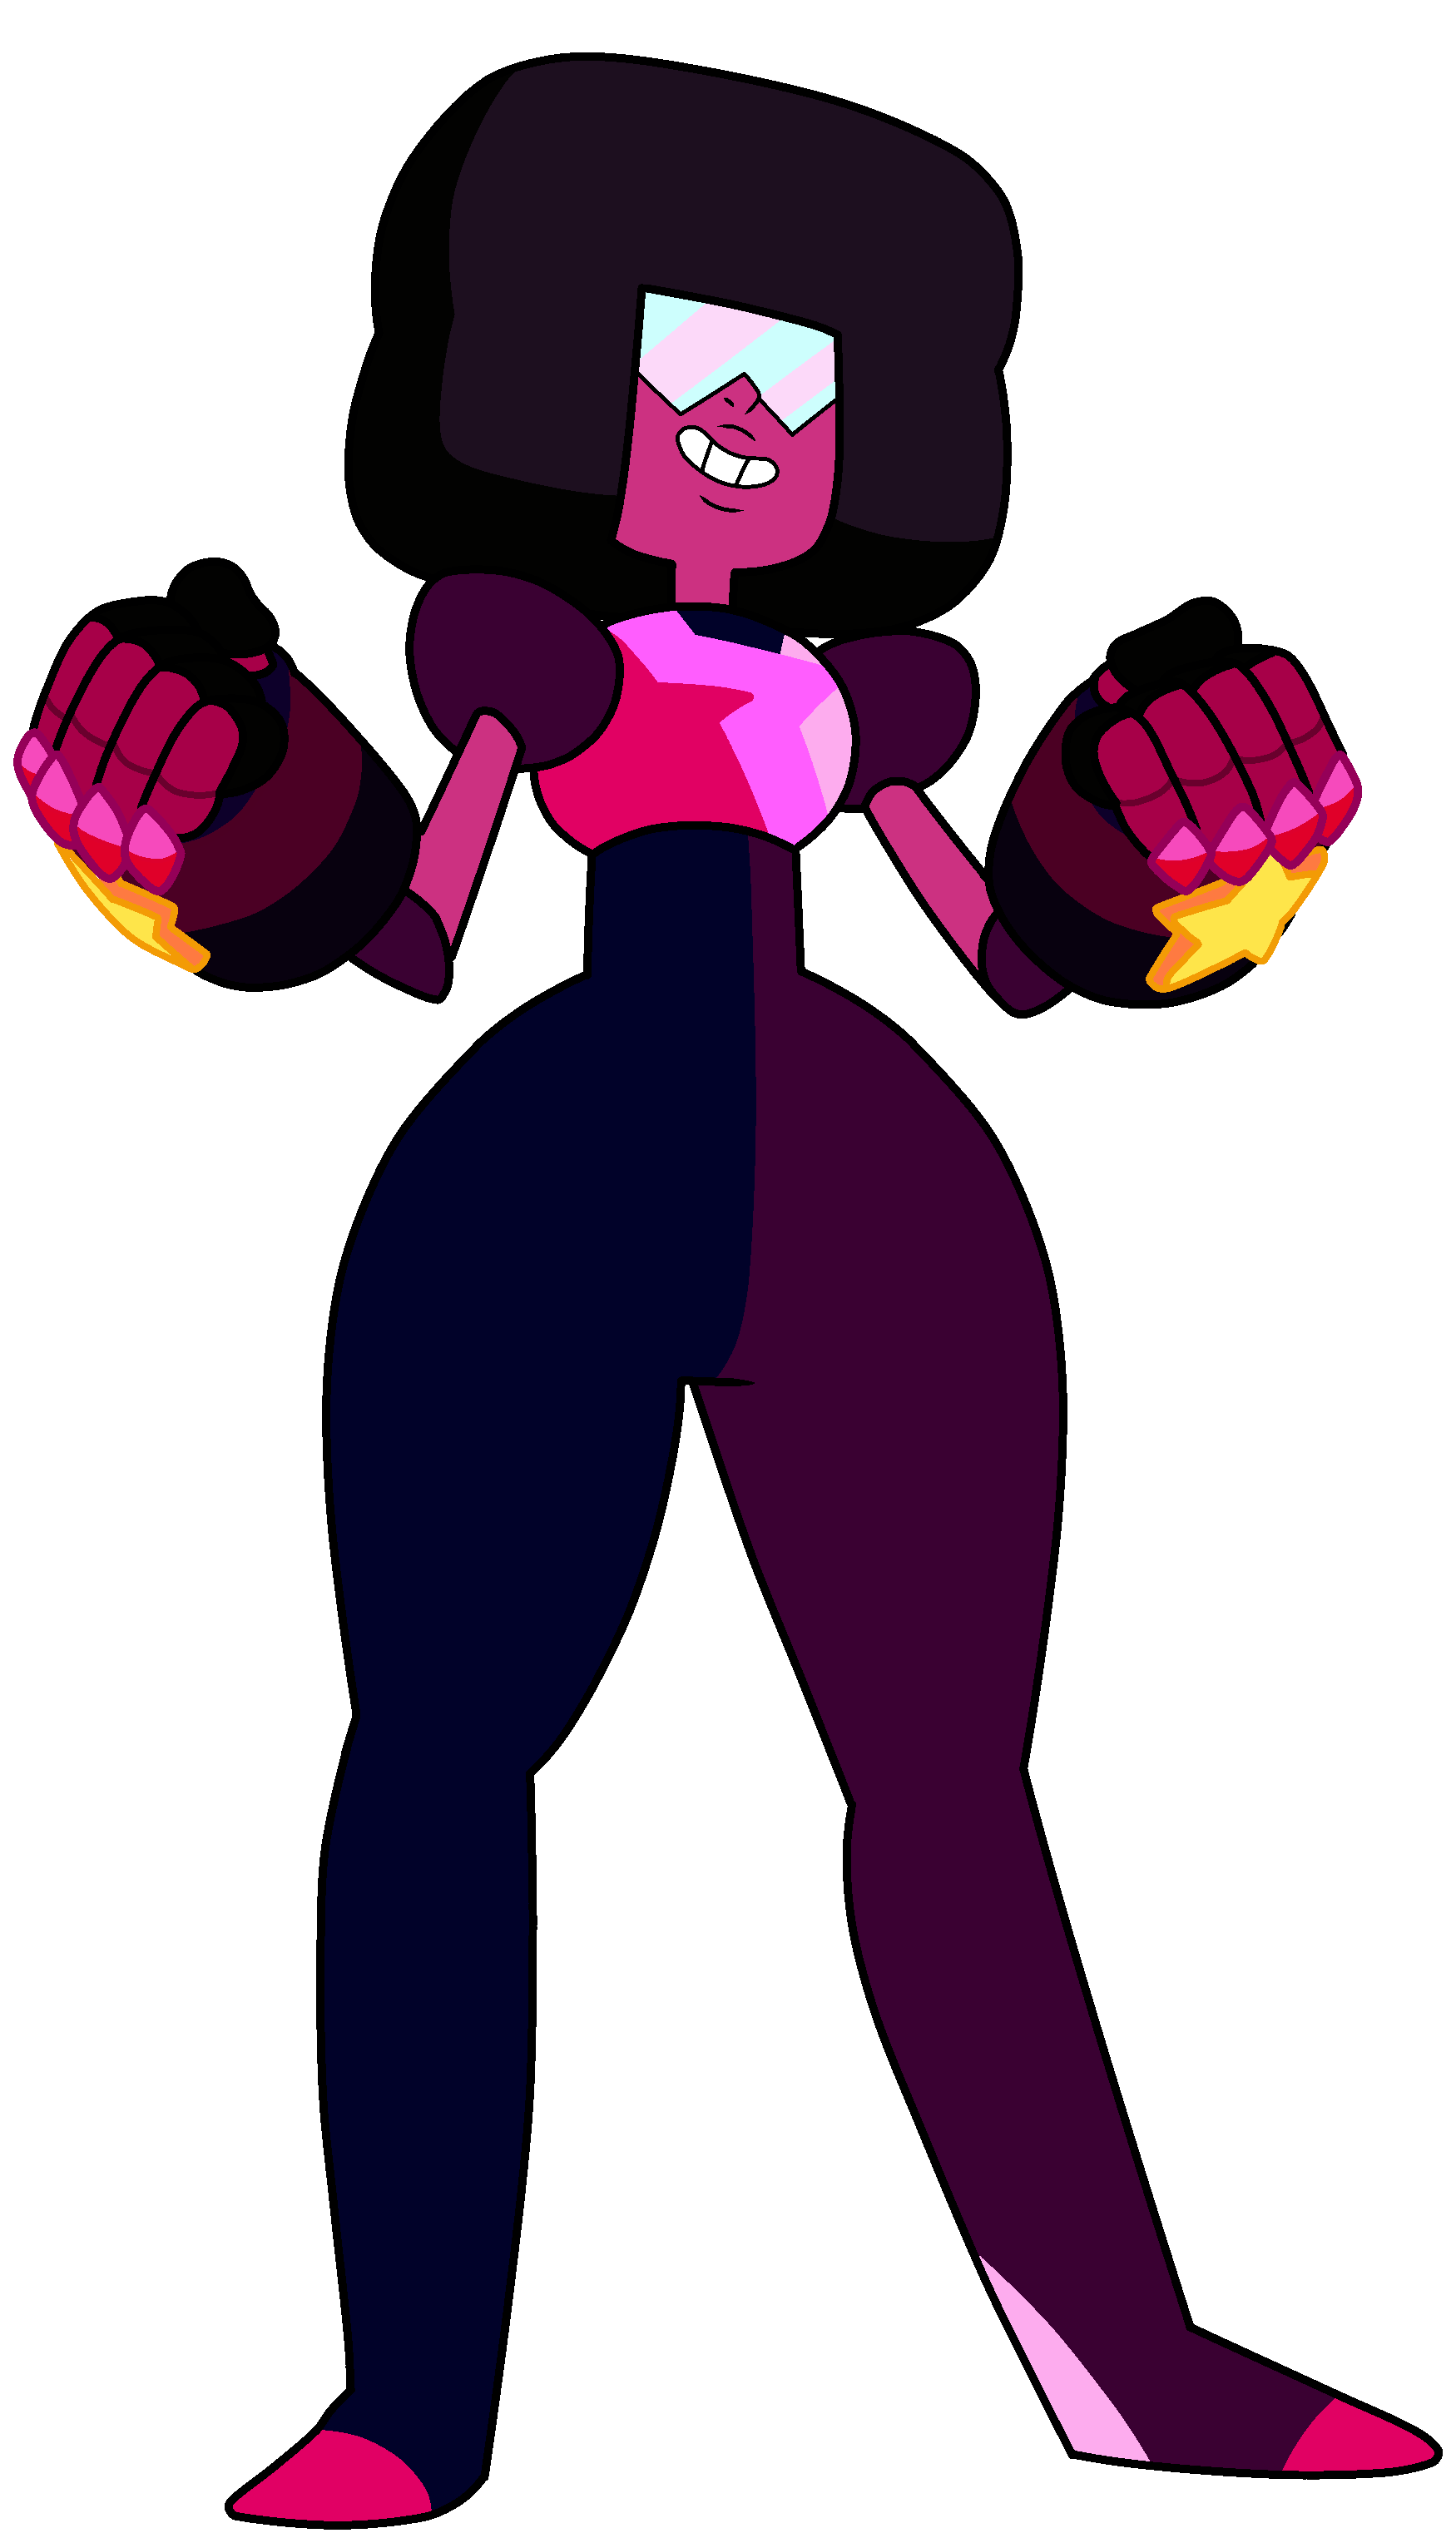 Drawing gemstones steven universe. All these black characters